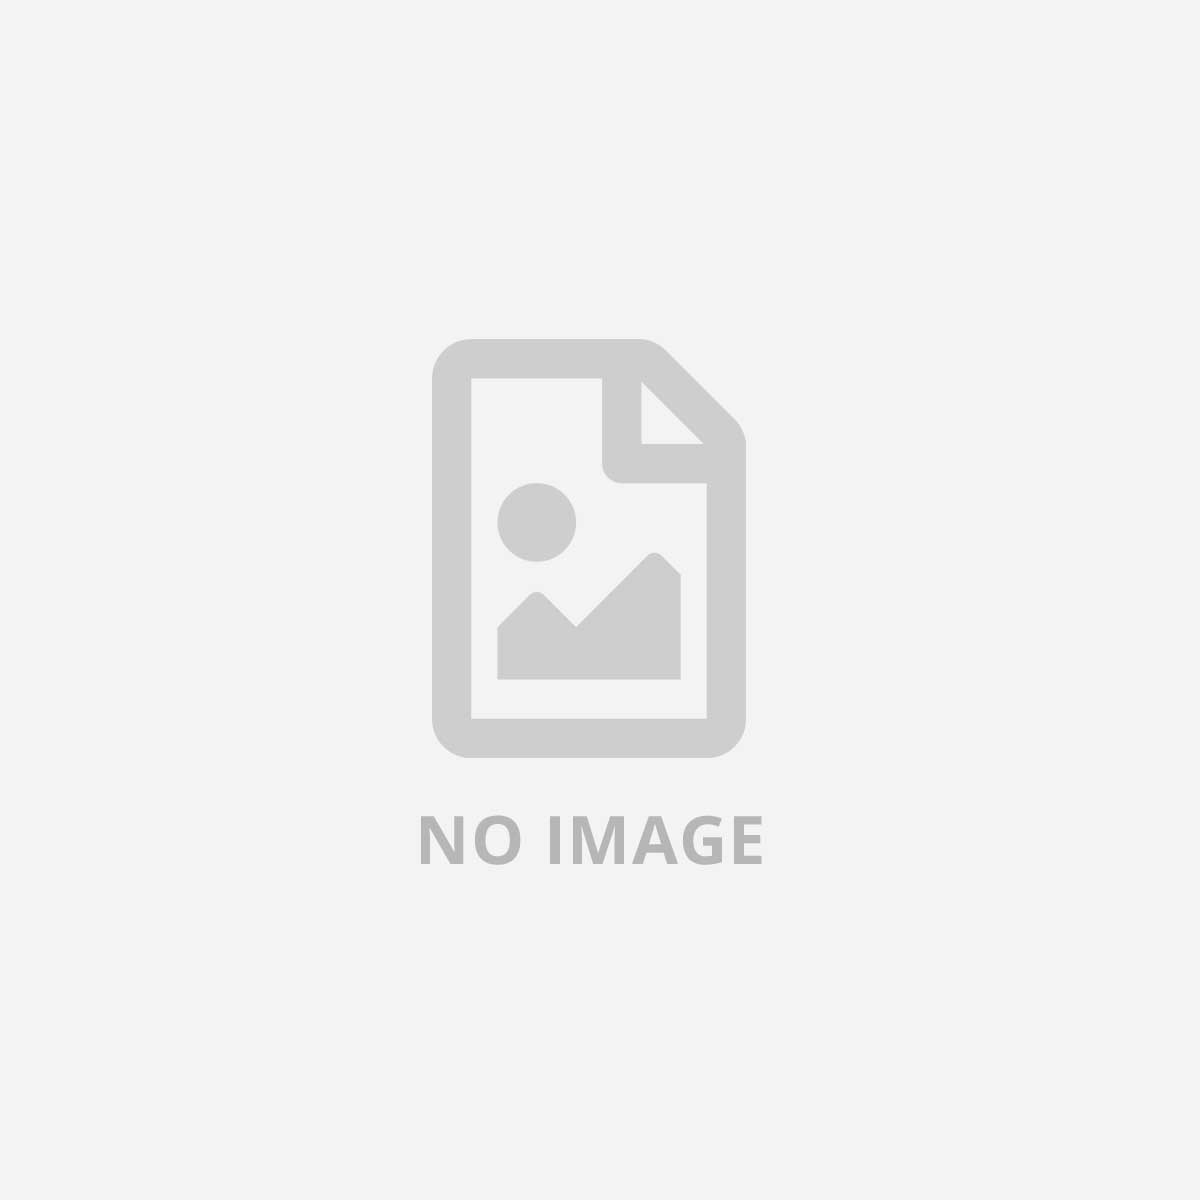 PHILIPS PASTIGLIA OIL REMOVE